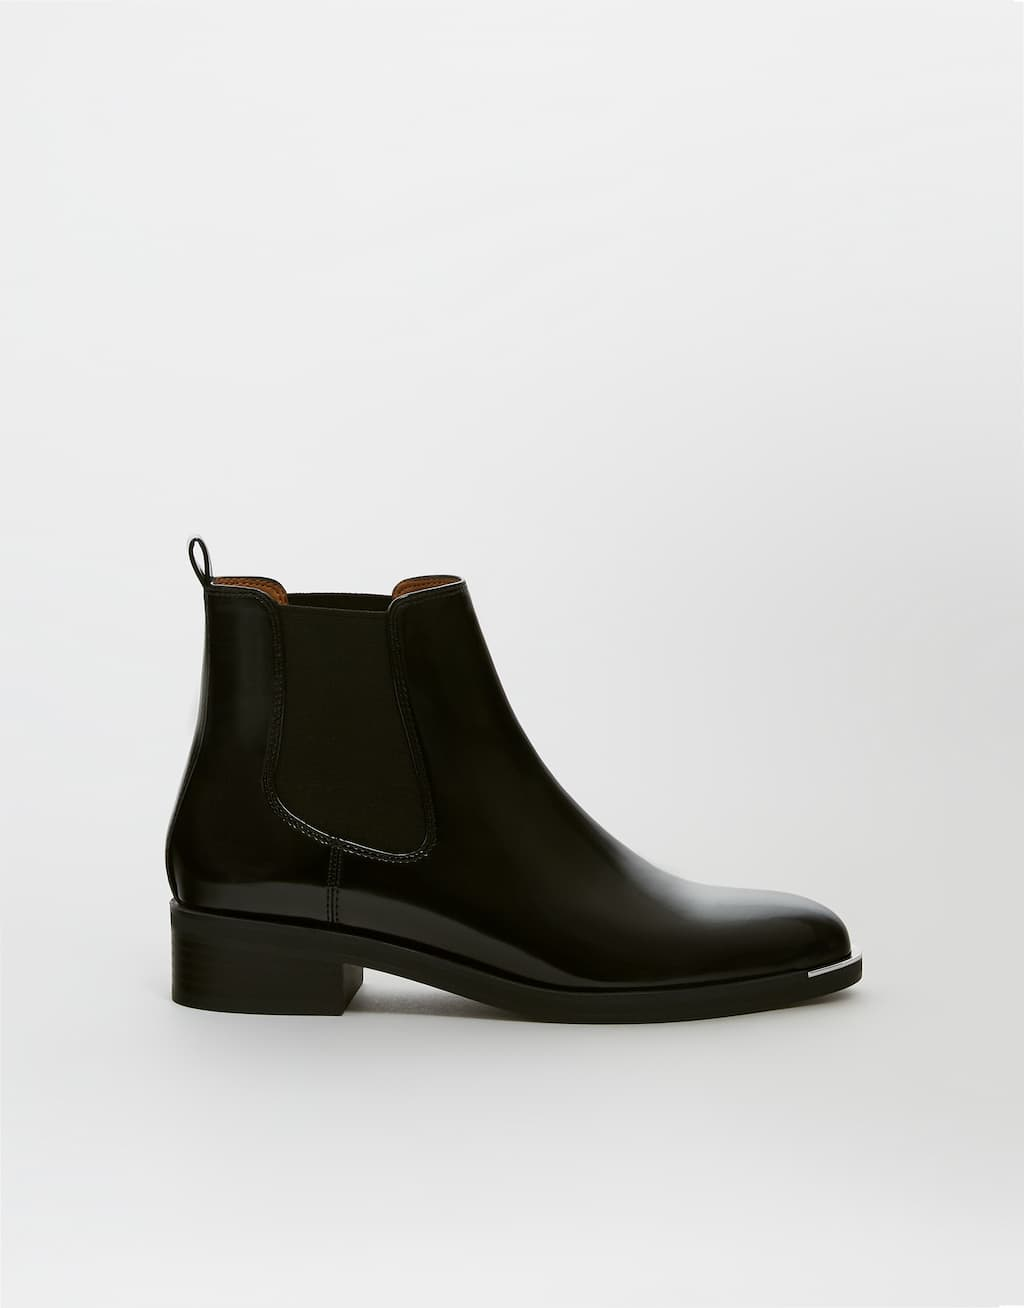 Glossy Black Ankle Boots by Pull & Bear